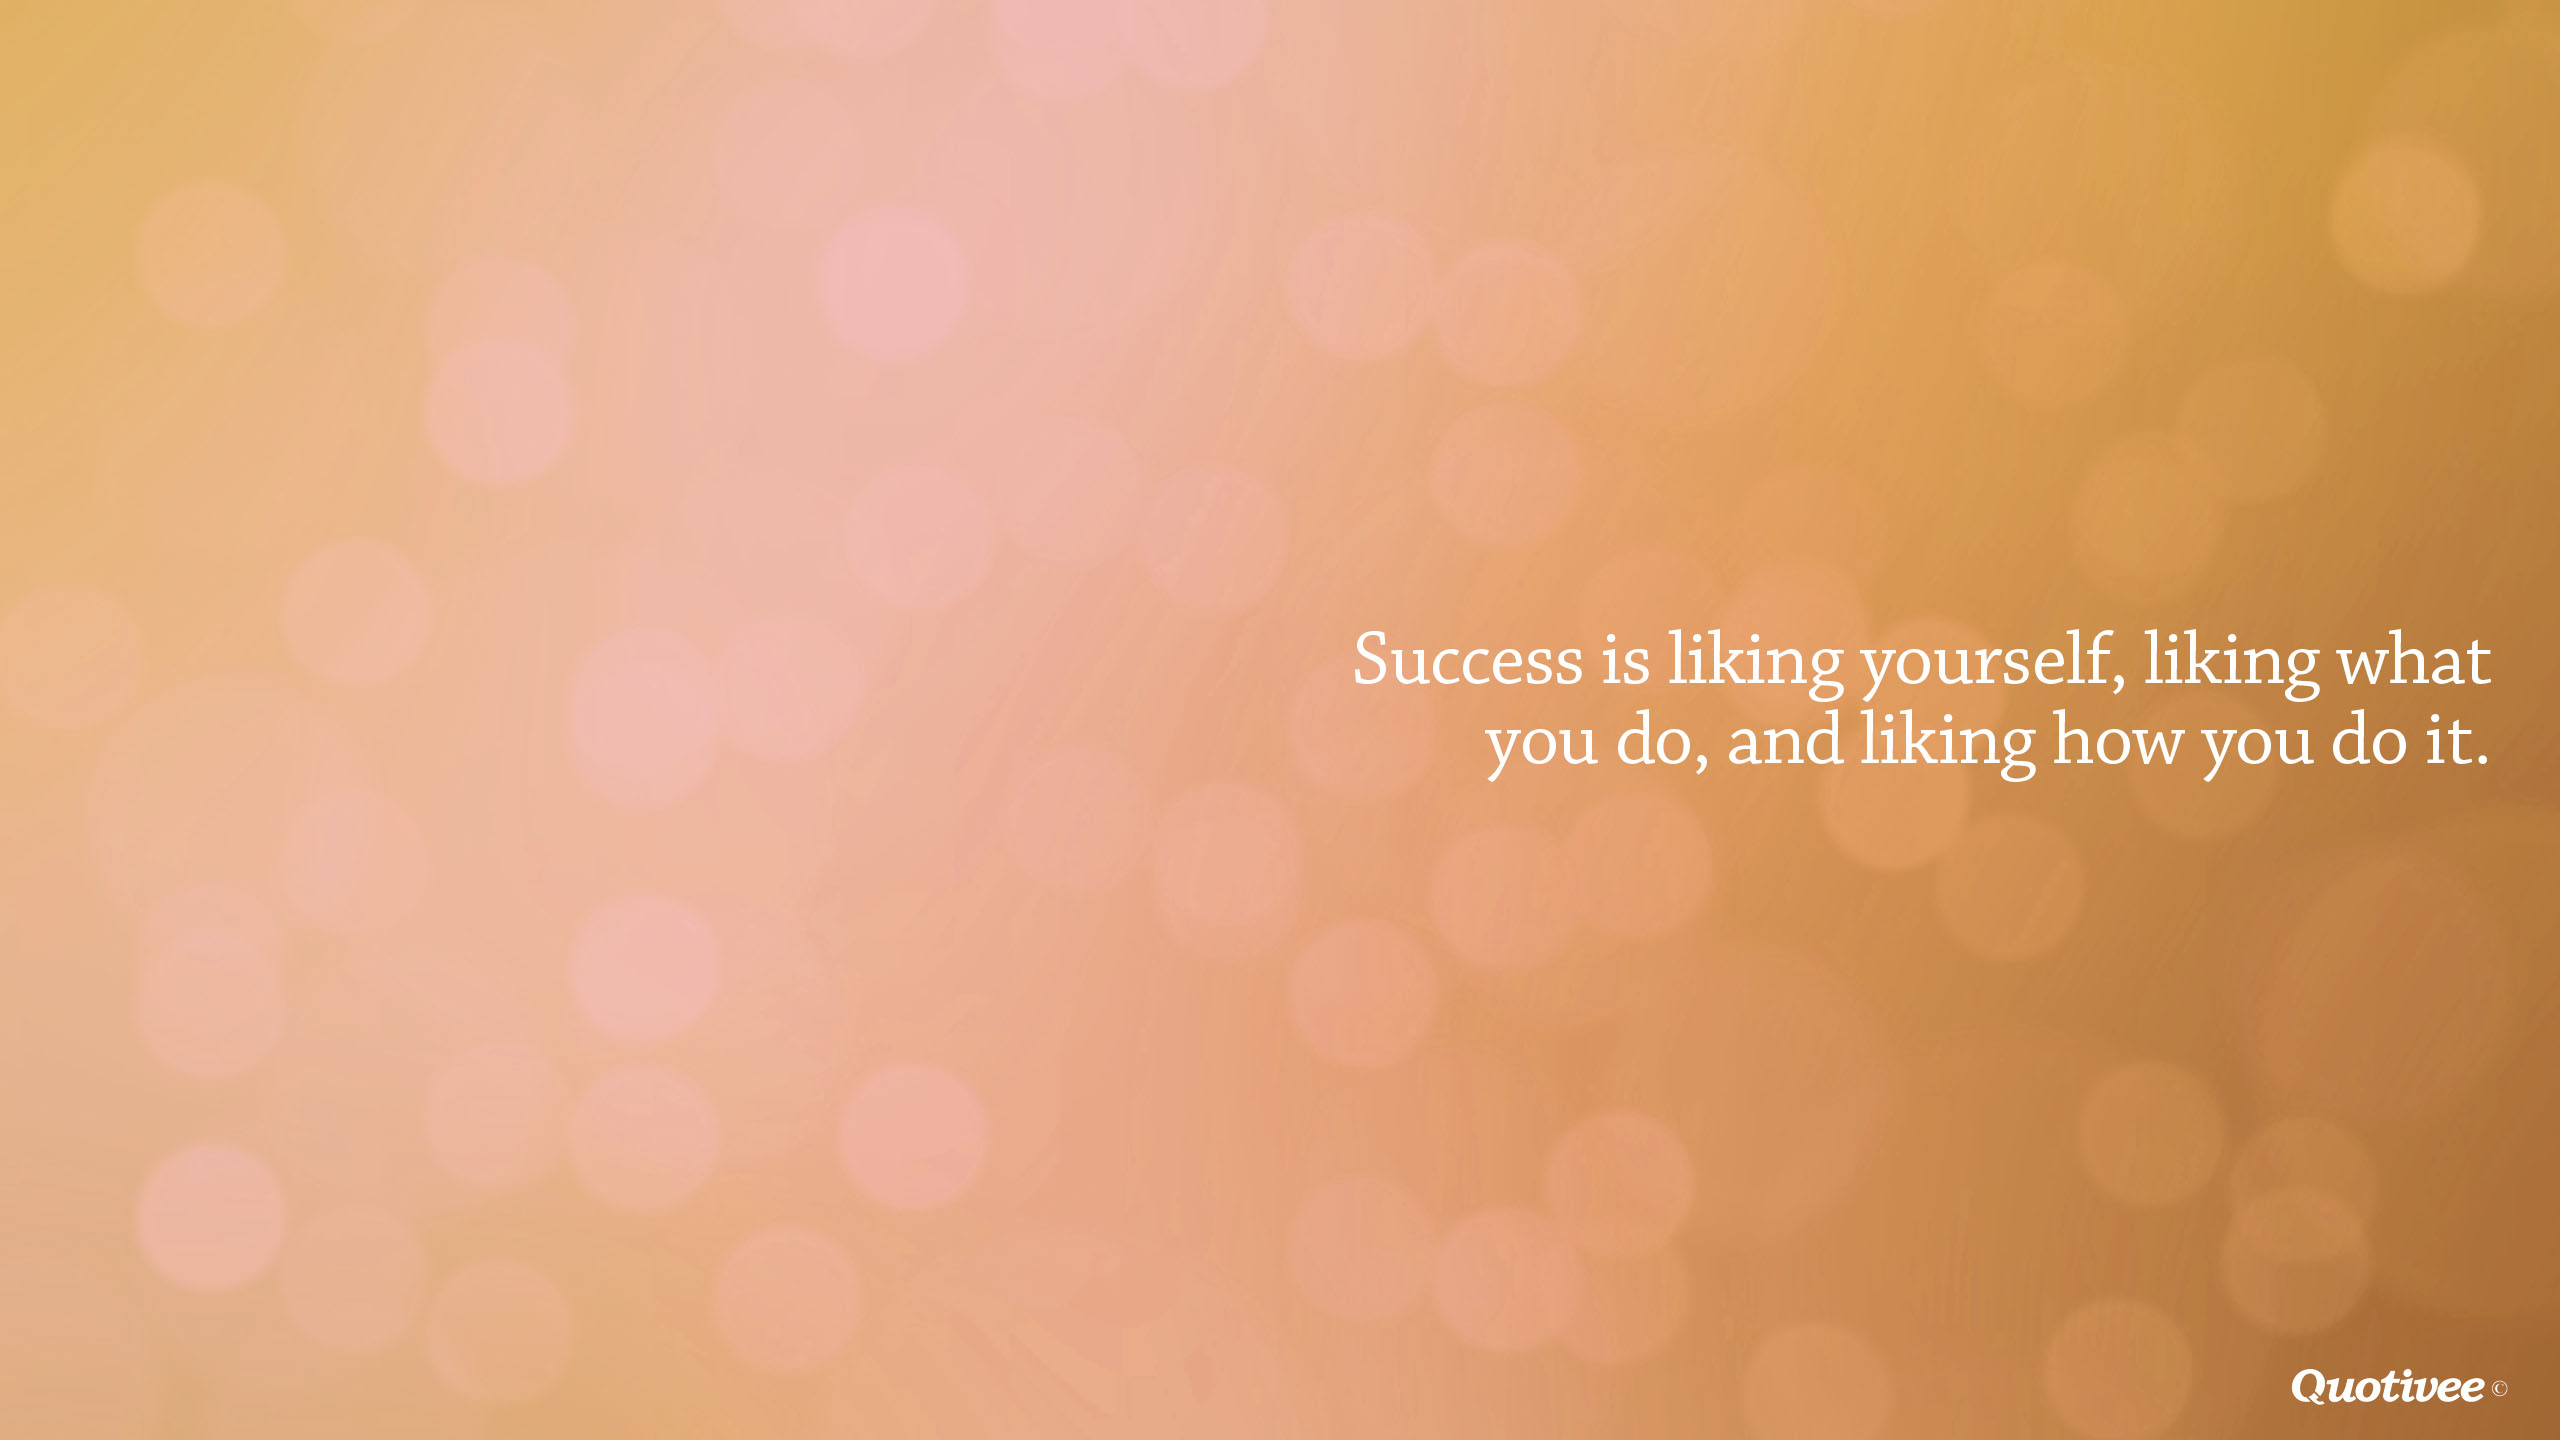 Business Inspirational Quotes Wallpaper Download Success Is Liking 3 Things Inspirational Quotes Quotivee